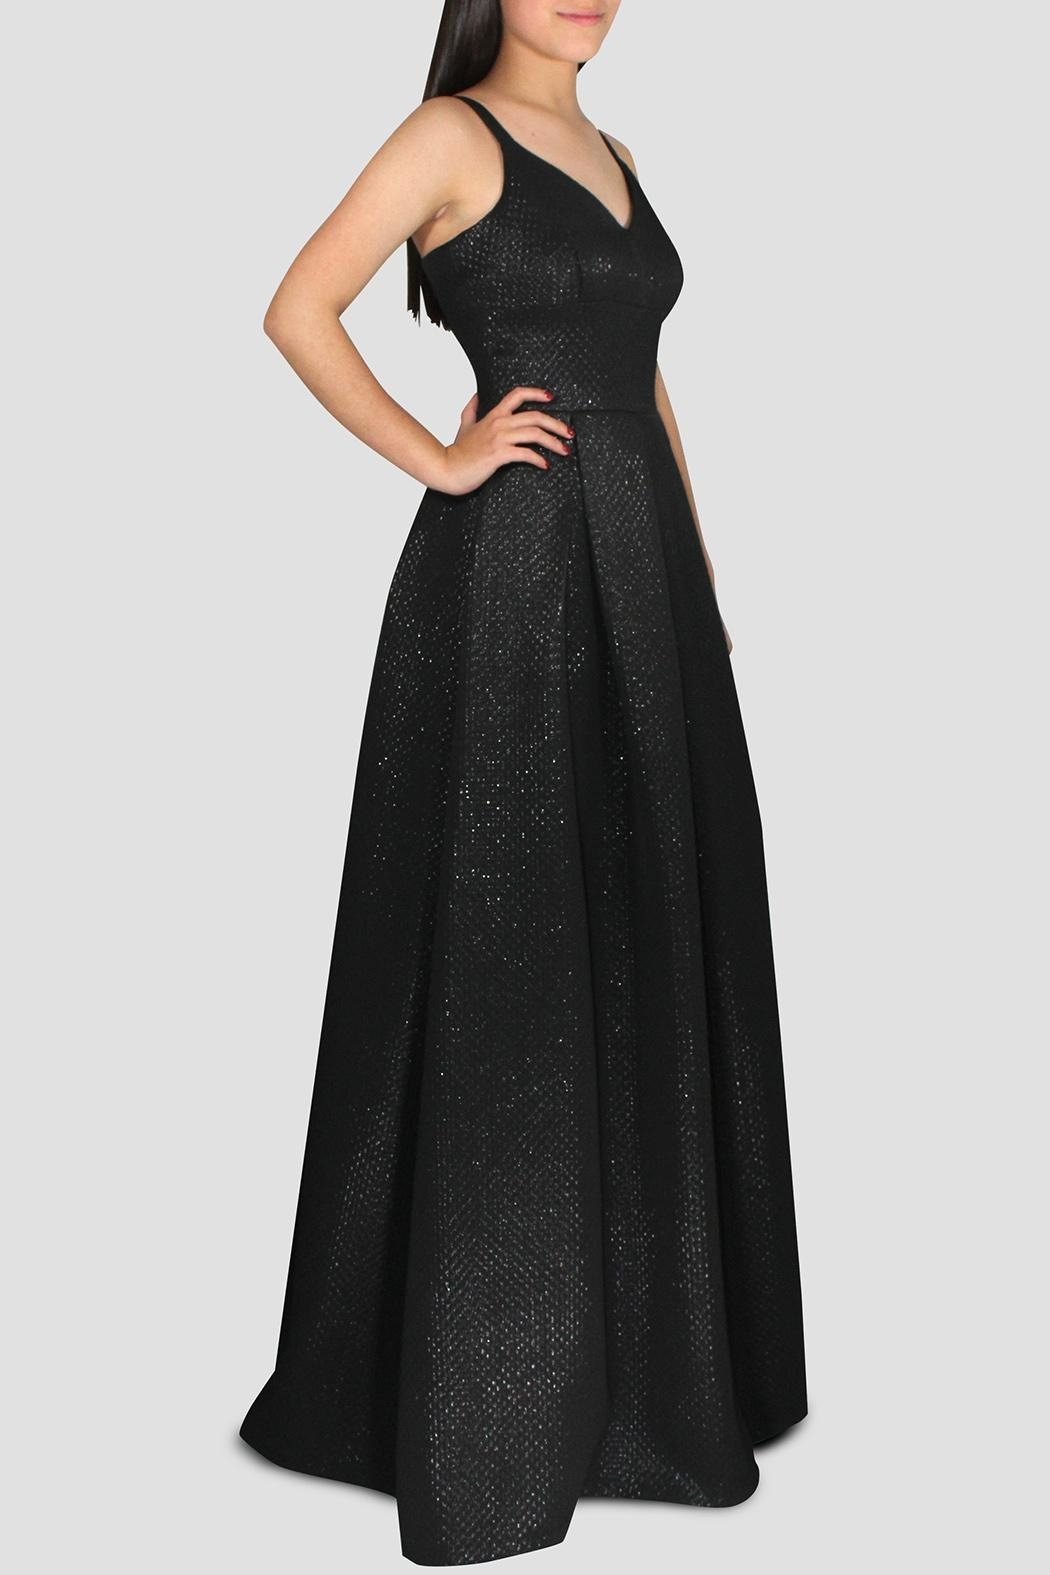 SoZu V-Neck Bell Gown - Front Full Image